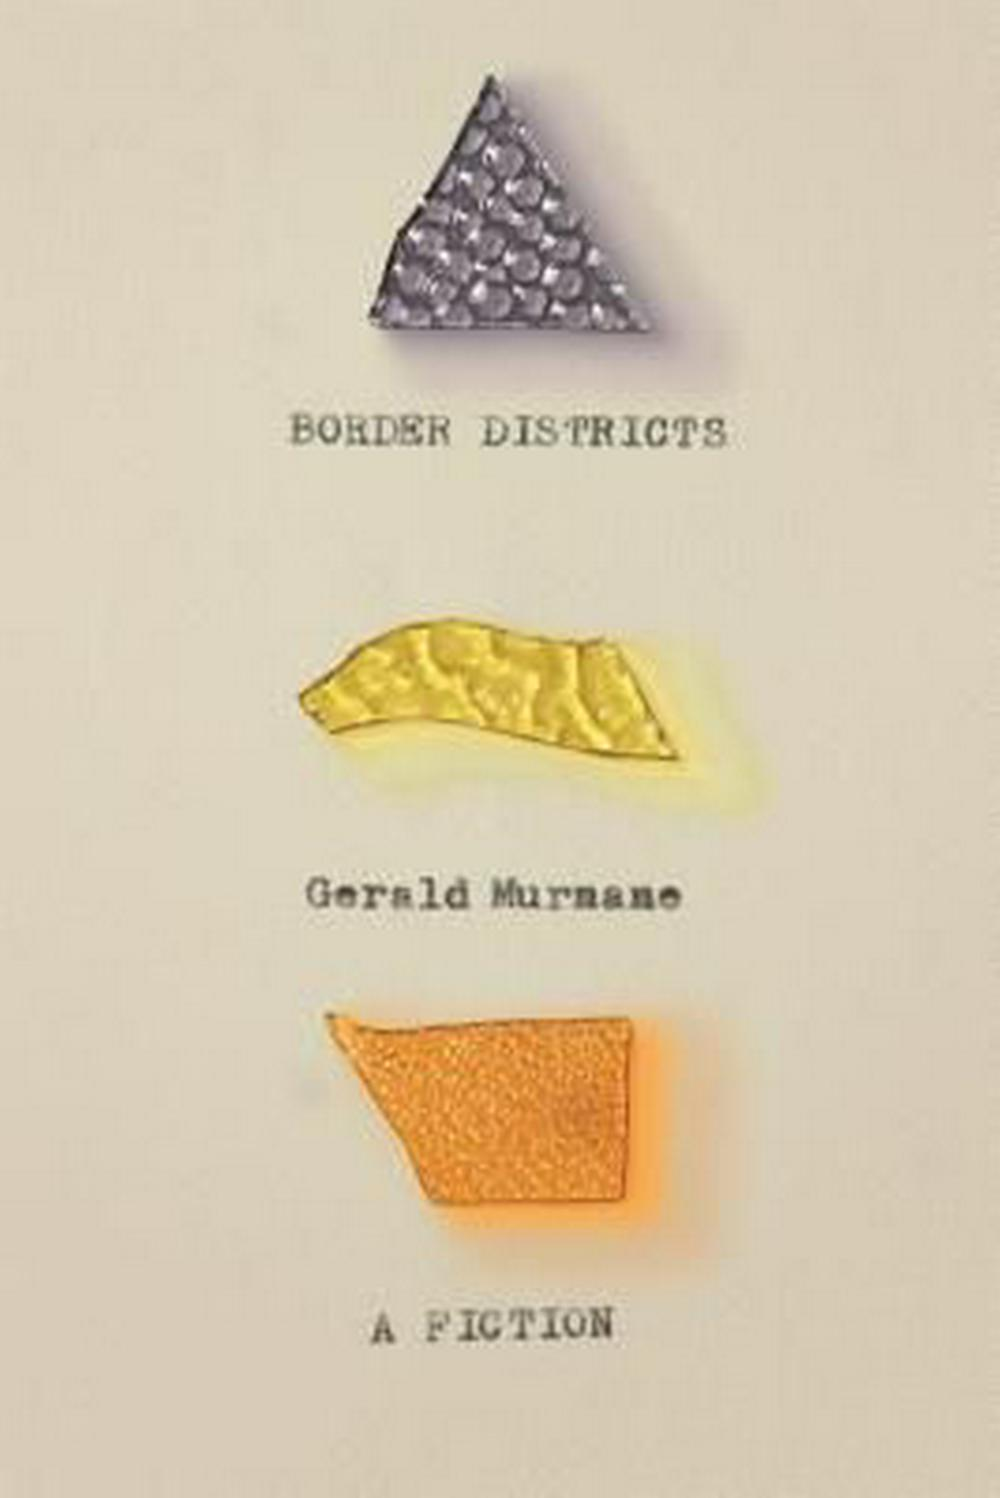 Border Districts: A Fiction